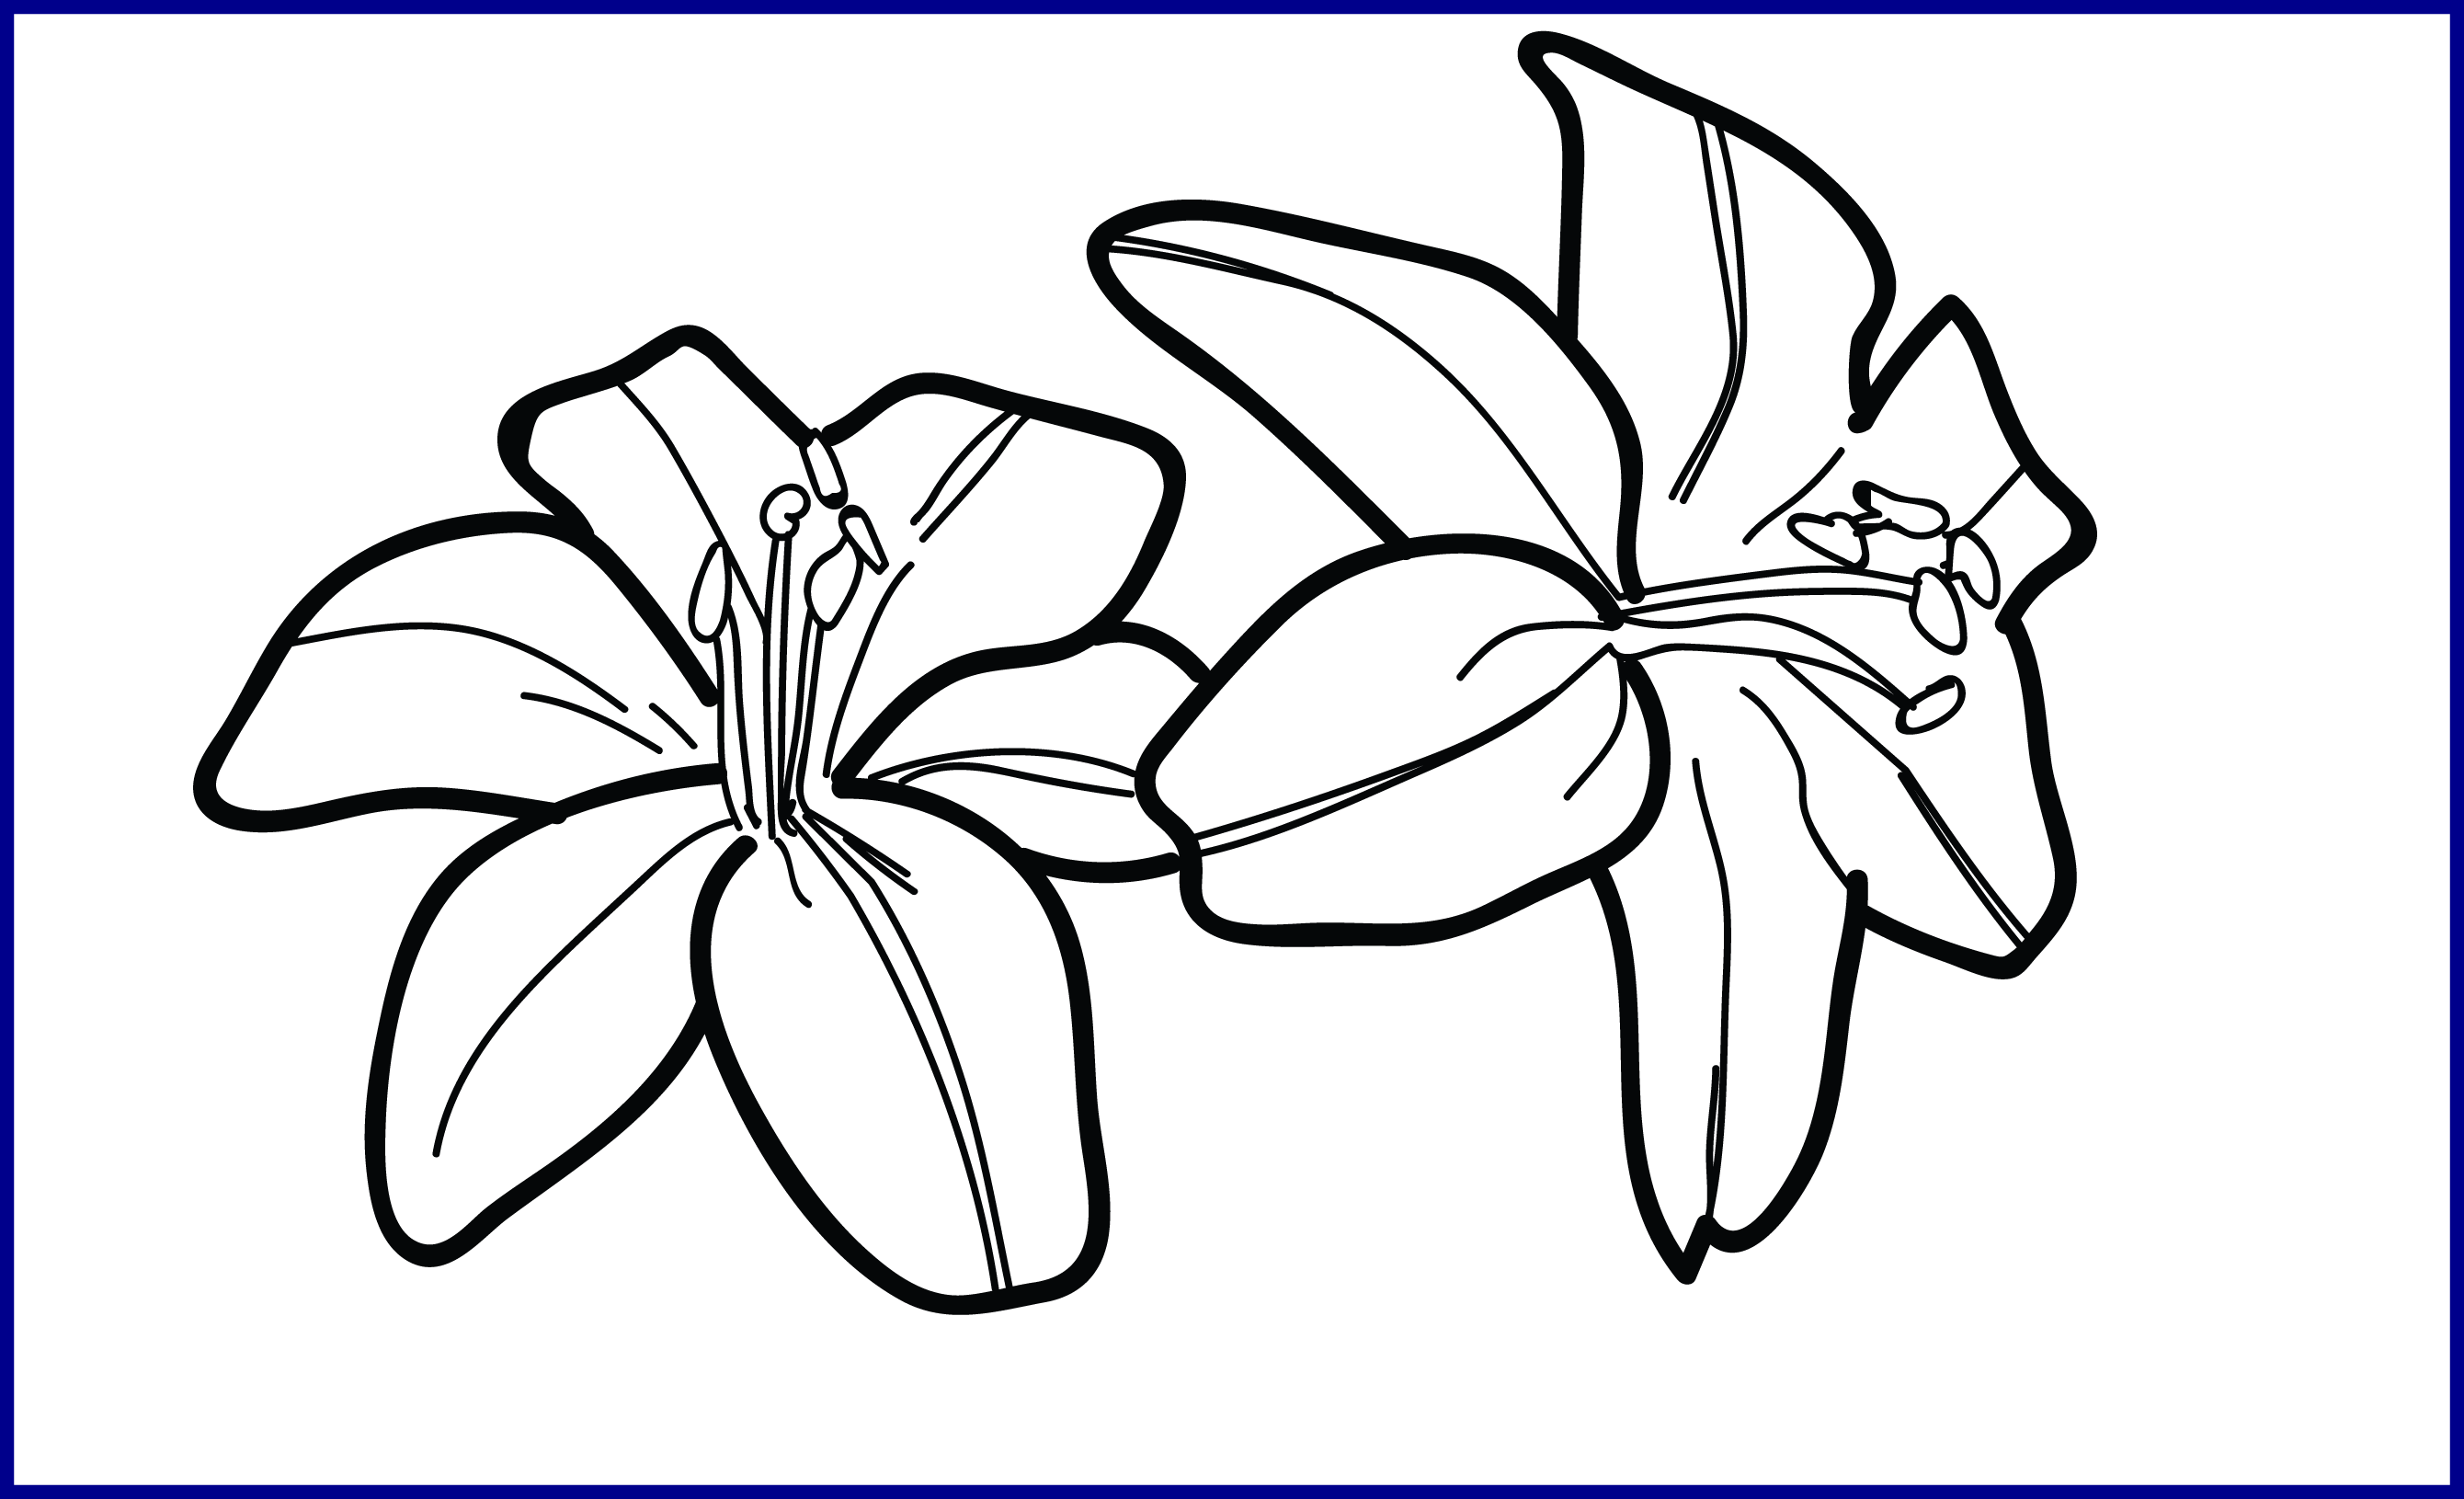 Lily Flower Outline Png Free Lily Flower Outline Png Transparent Images 120284 Pngio